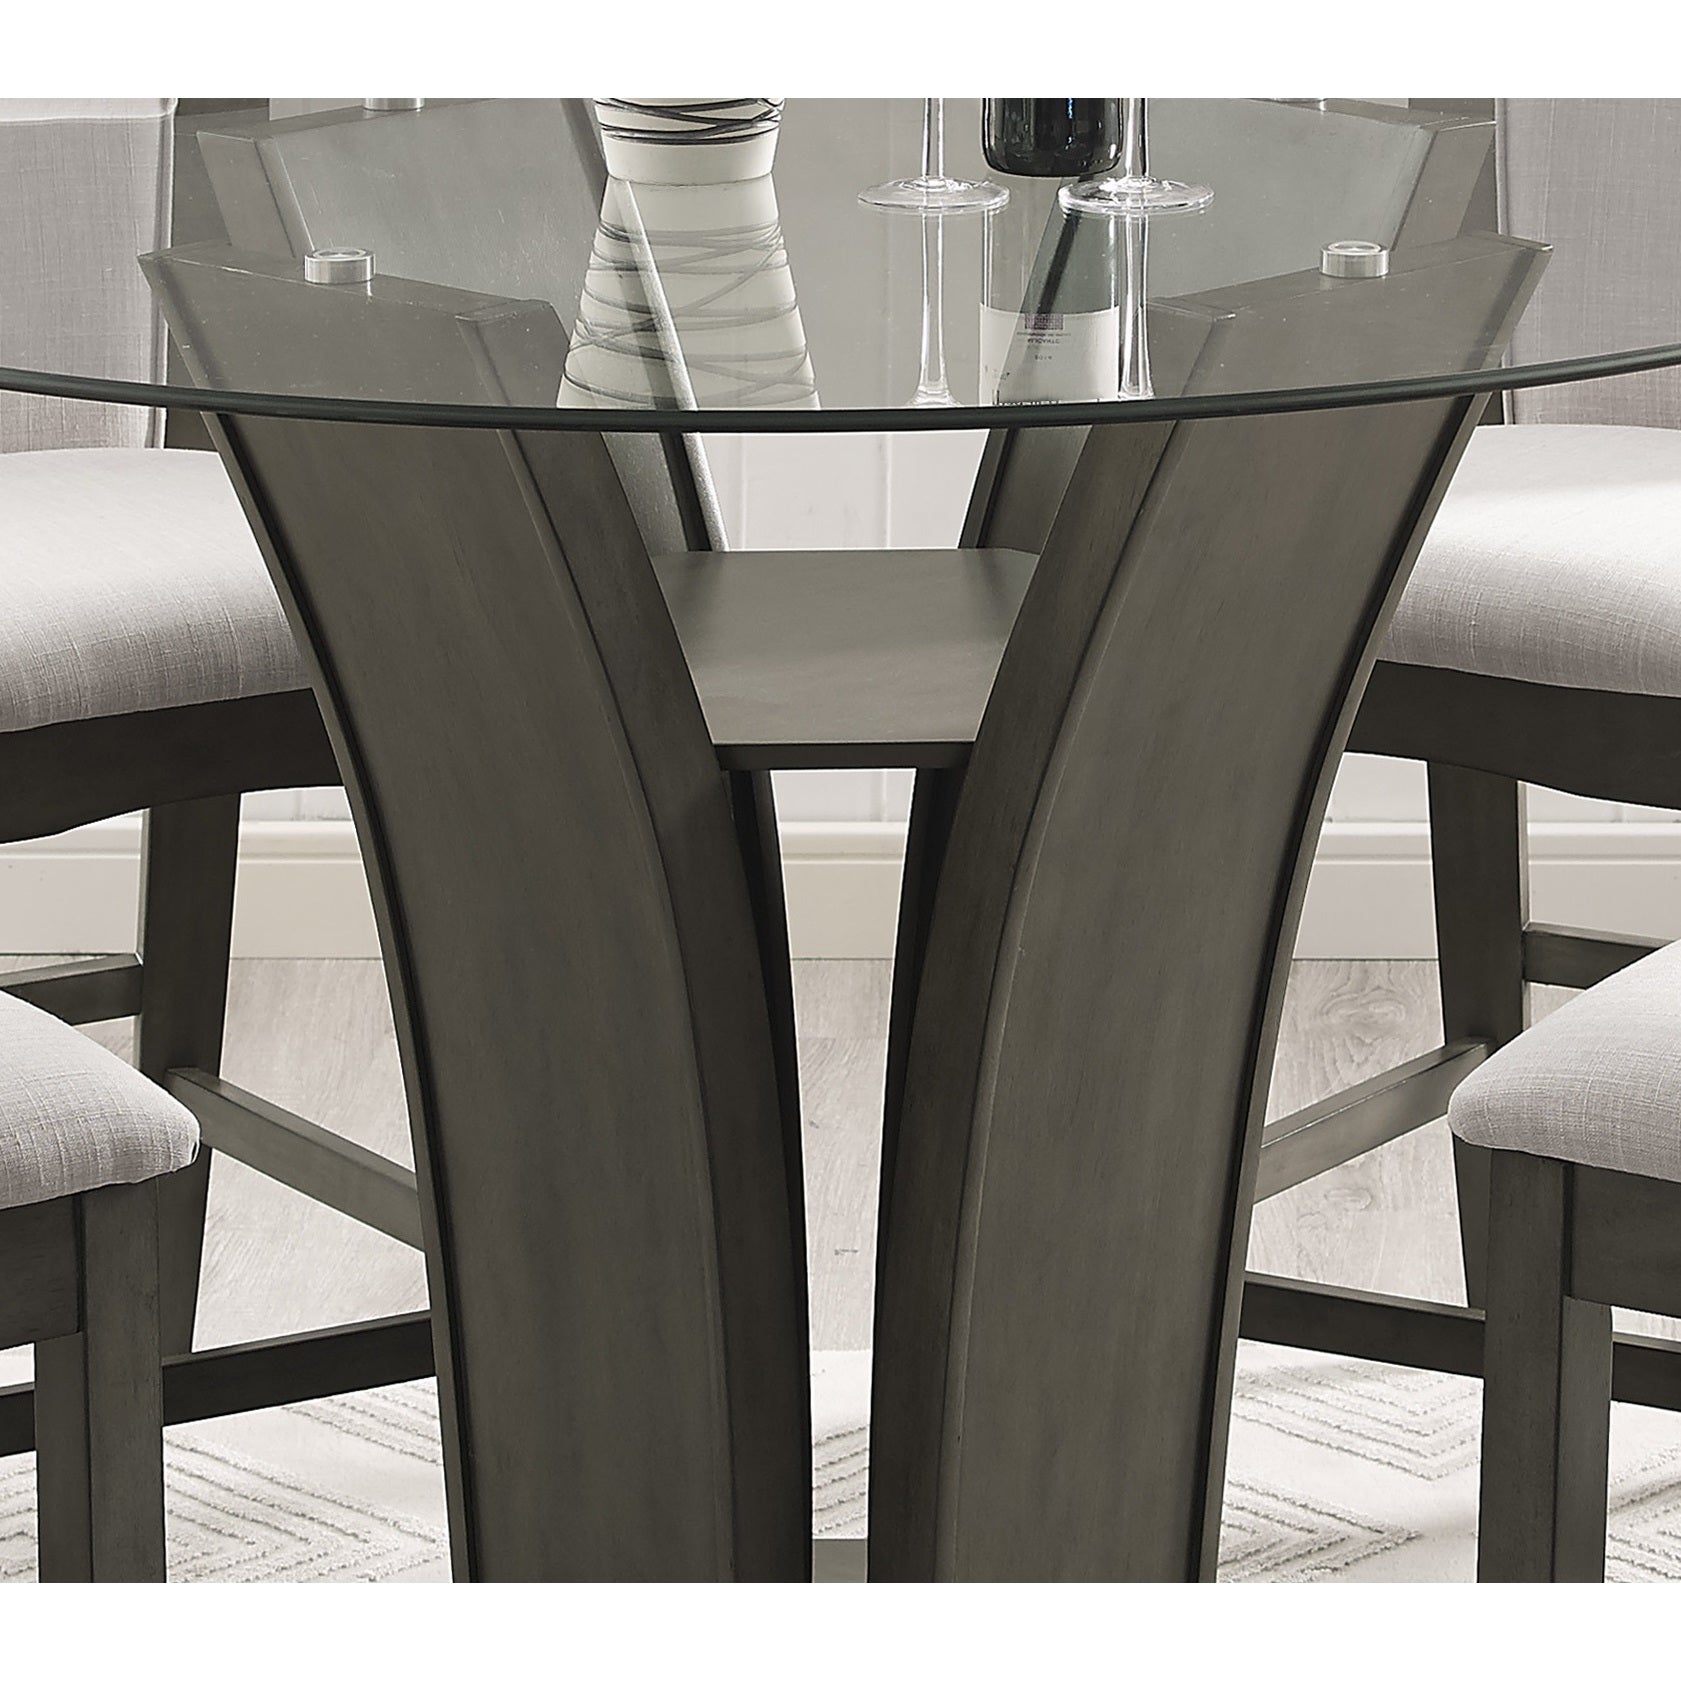 High Quality Kecco Grey 5 Piece Glass Top Dining Set, Table With 4 Chairs   Free  Shipping Today   Overstock.com   23004165